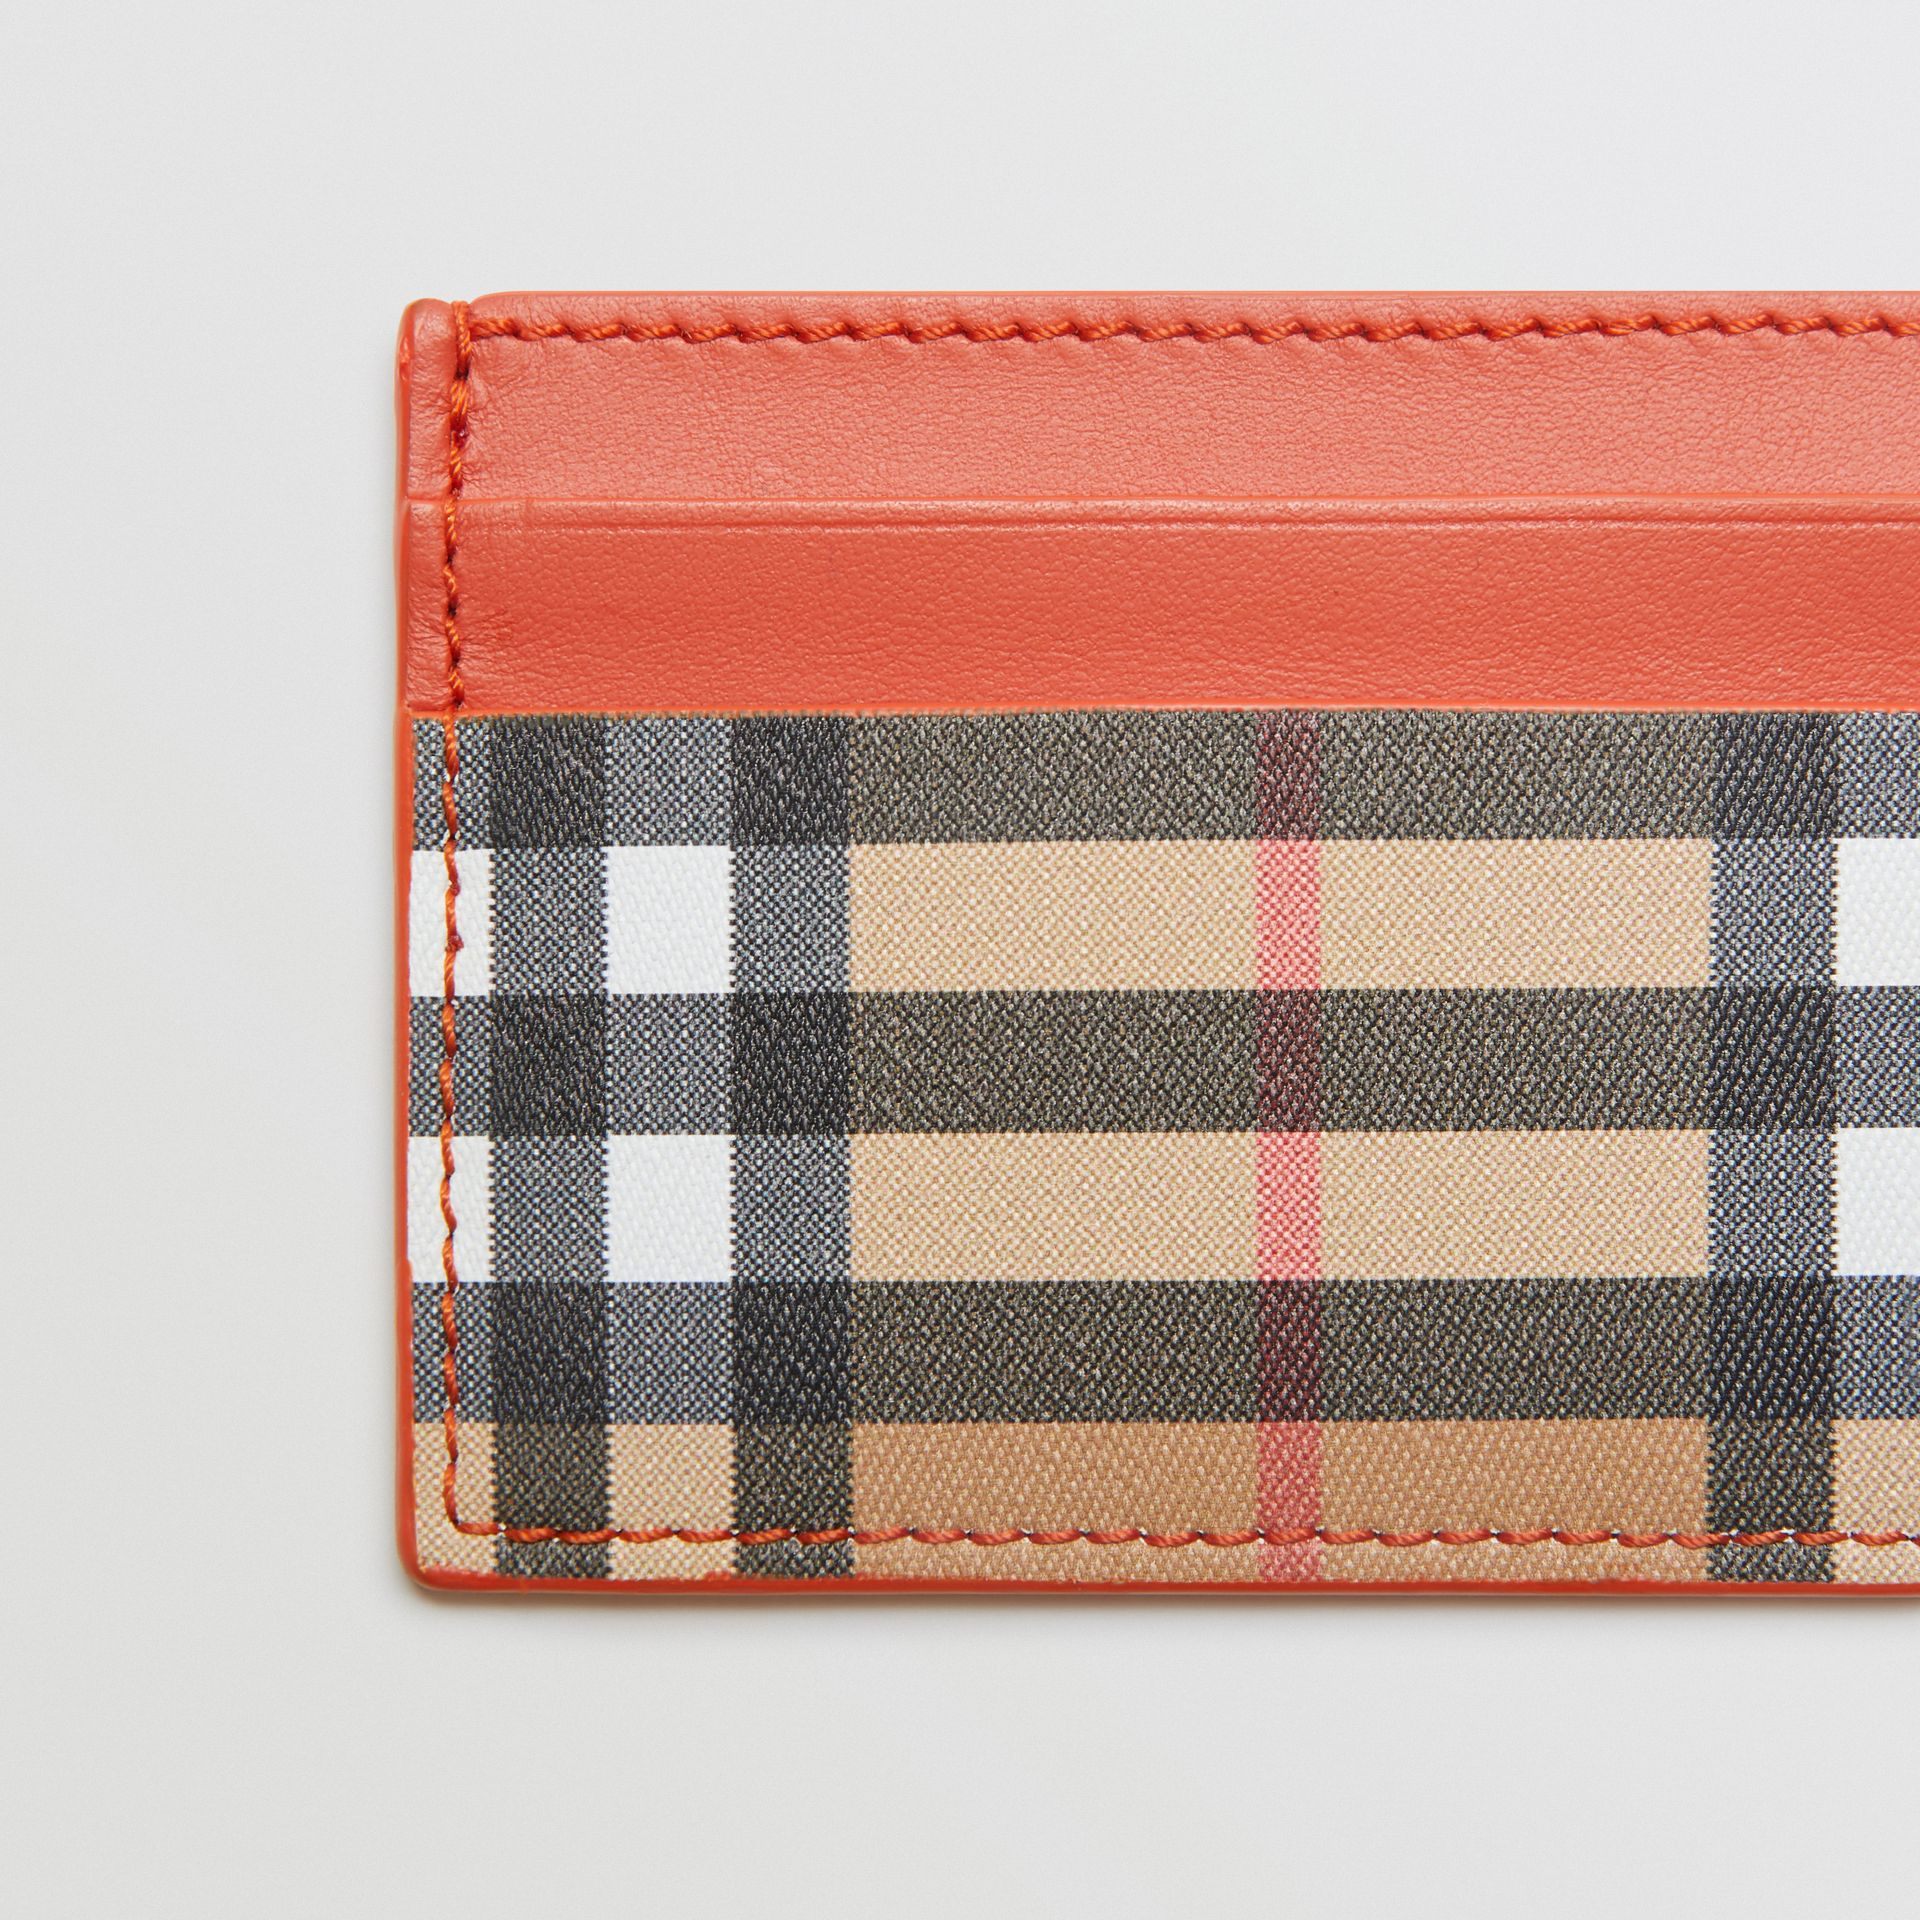 Vintage Check and Leather Card Case in Clementine - Women | Burberry - gallery image 1